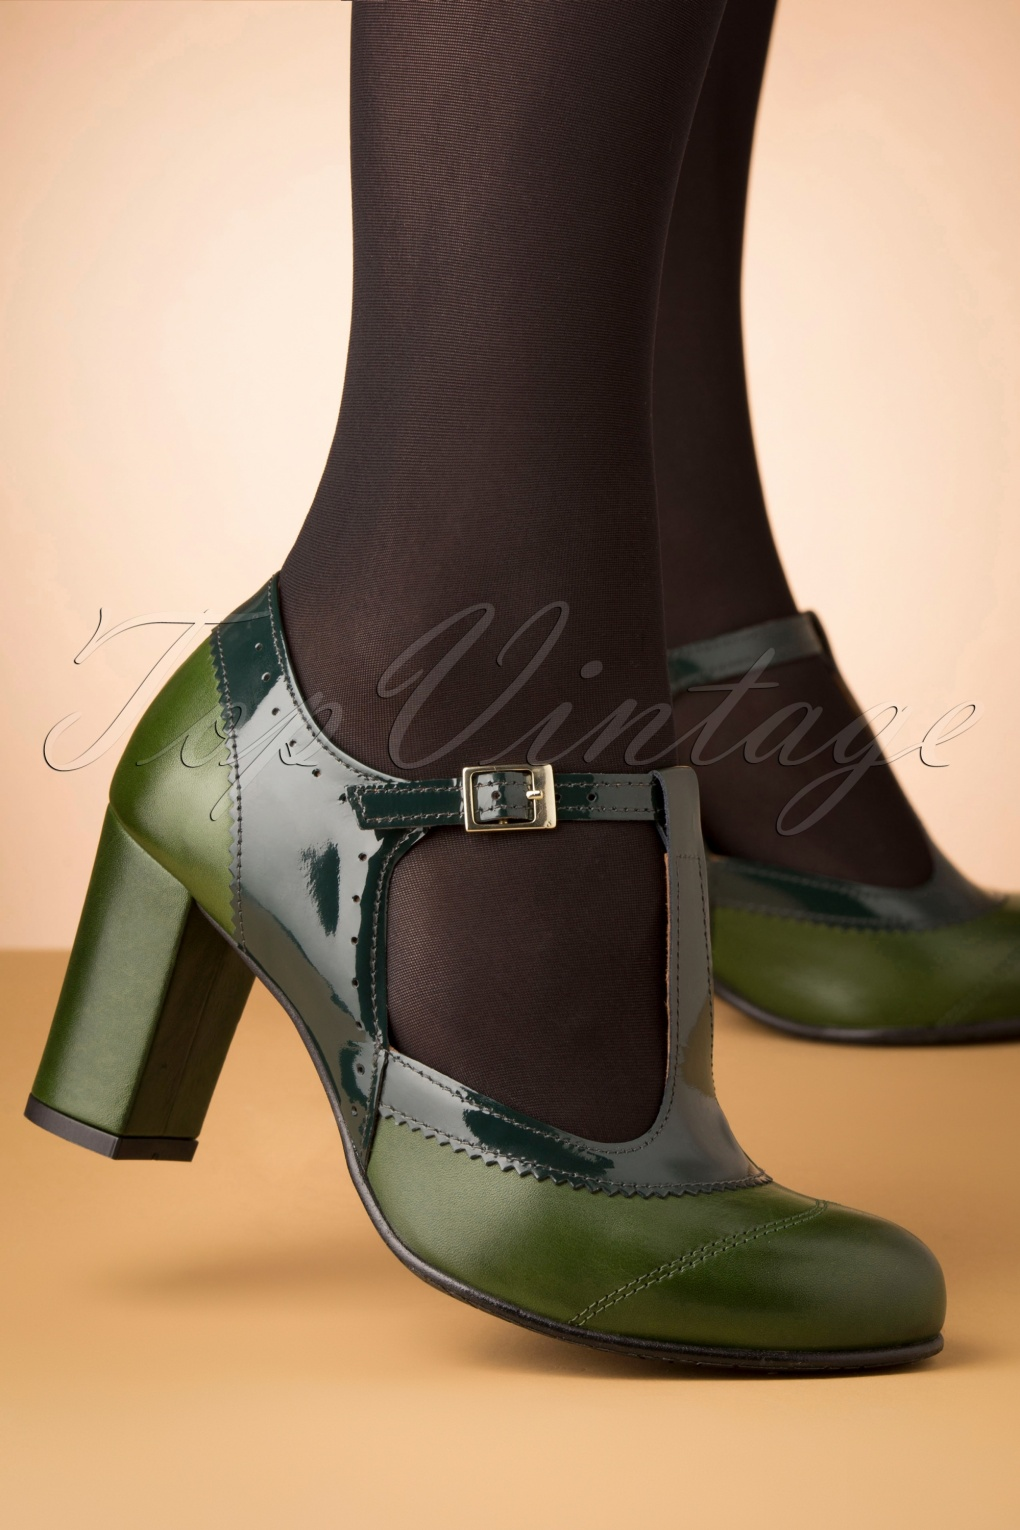 Vintage Style Shoes, Vintage Inspired Shoes 60s Ada Leather T-Strap Pumps in Green £127.78 AT vintagedancer.com